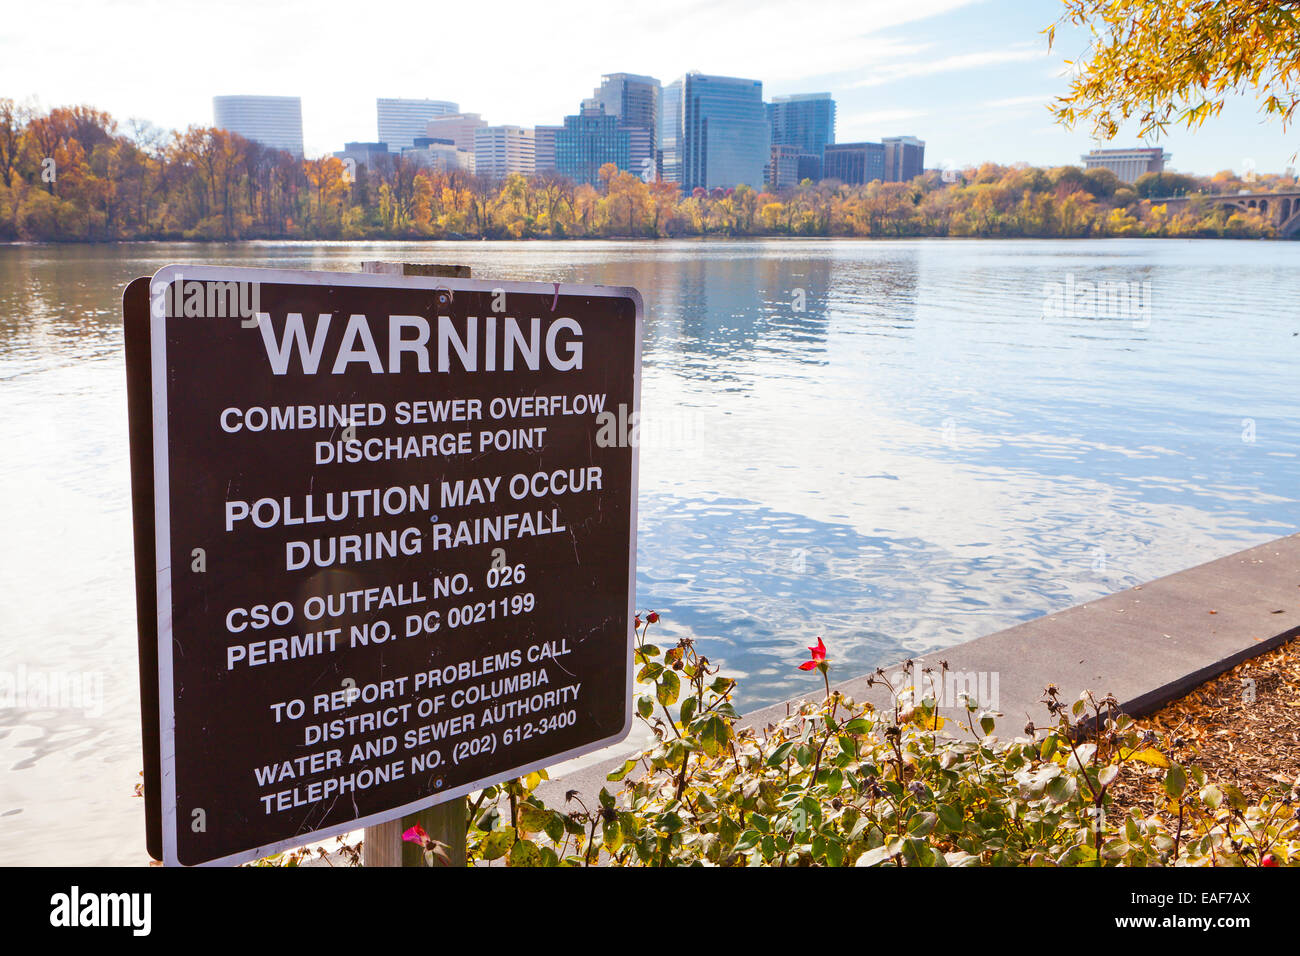 Pollution warning sign on Potomac River - Washington, DC USA - Stock Image